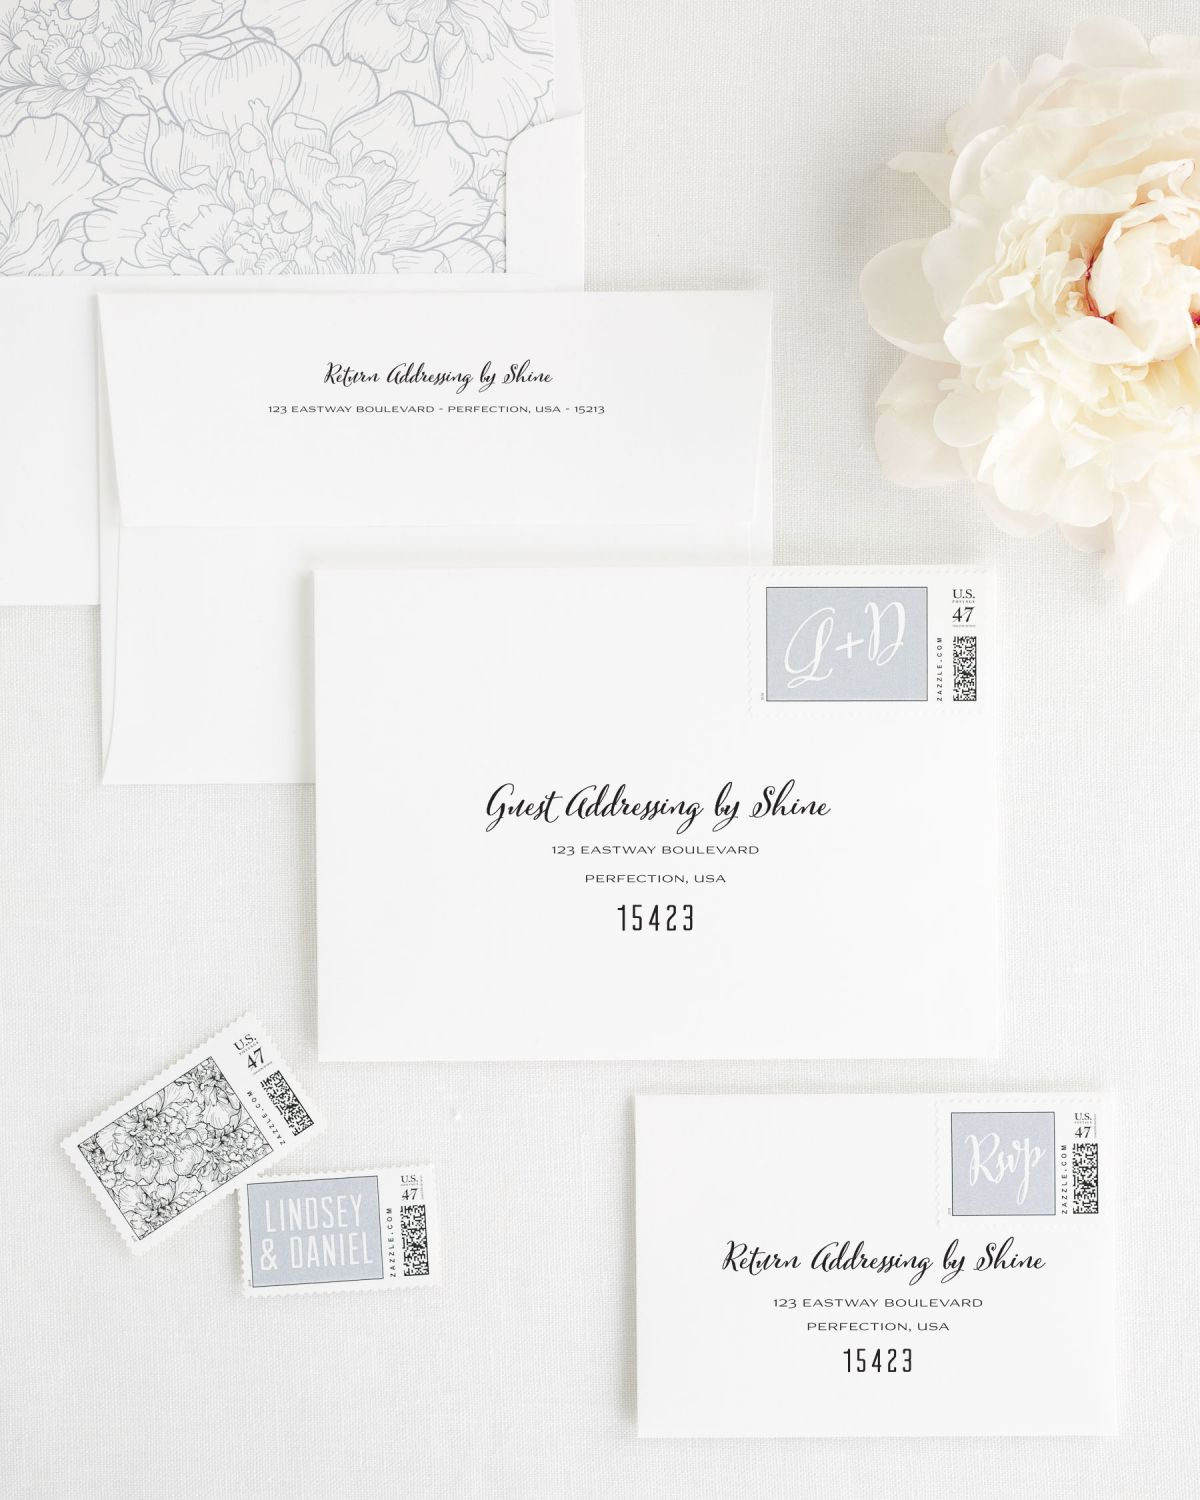 Wedding Invitation Envelopes with Computer Calligraphy and Matching Stamps